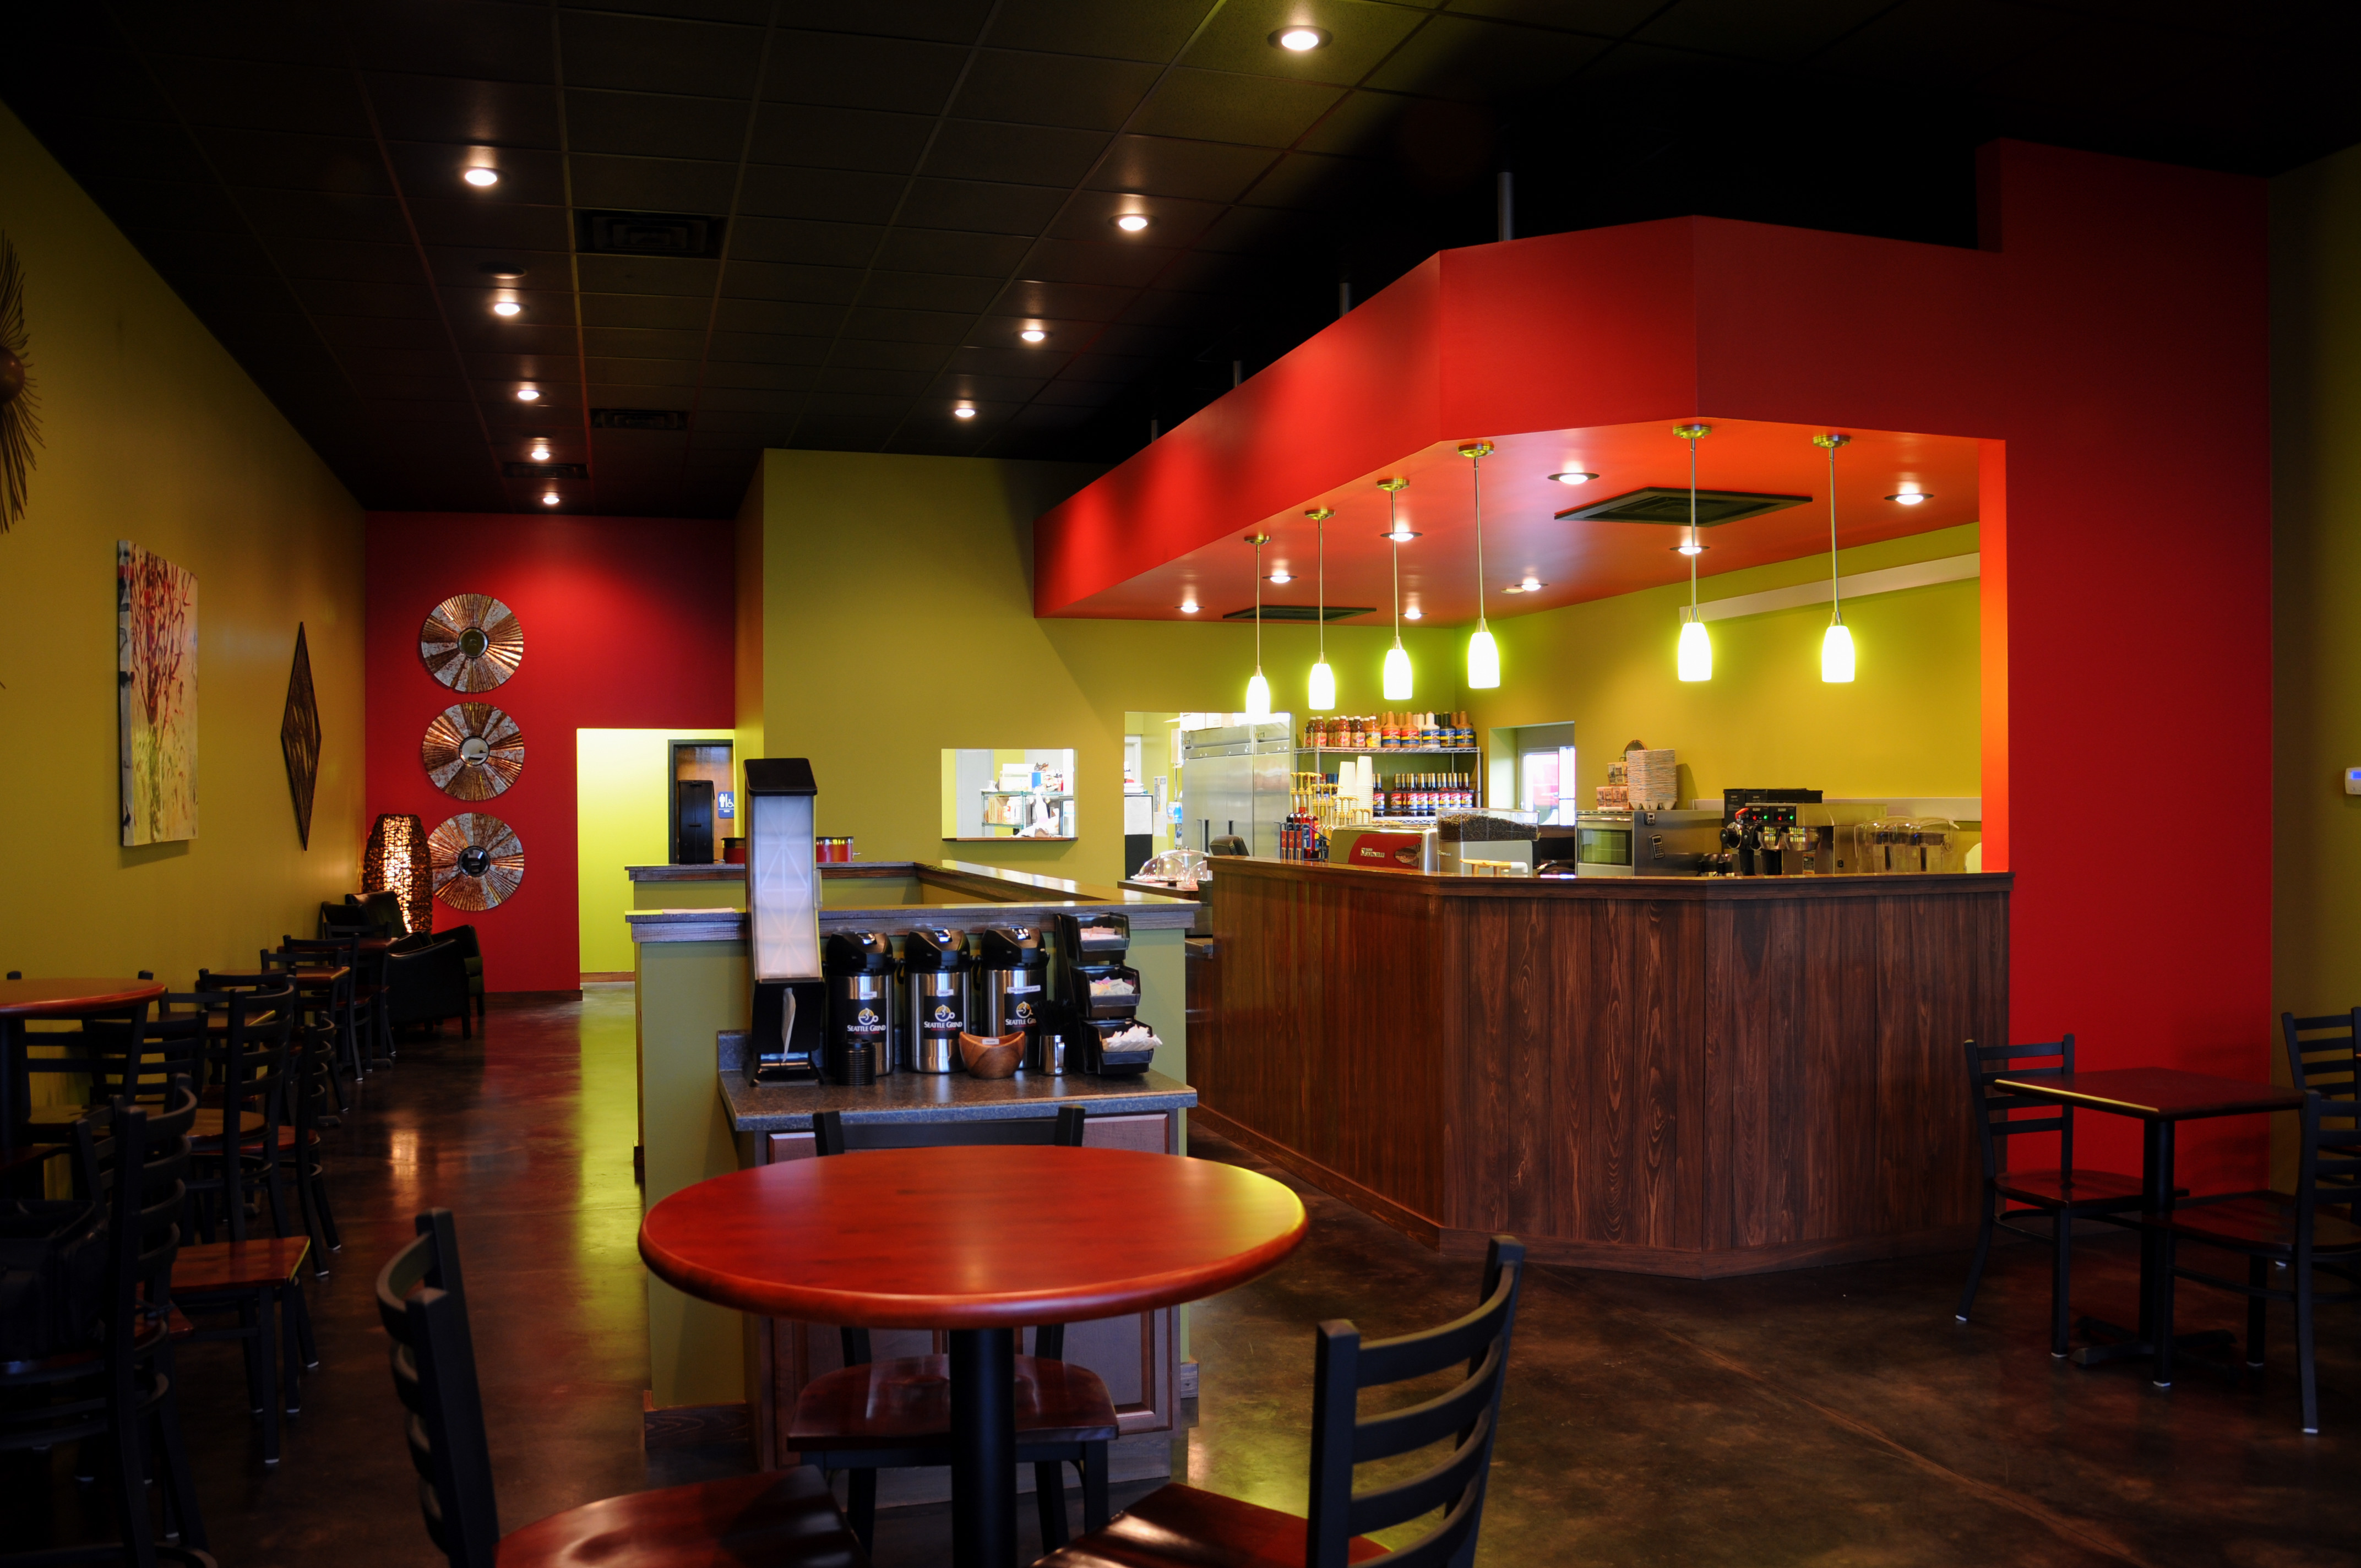 Seattle Grind Café Is A New Coffee Restaurant That Provides Not Only The Best Around But Great Food This Second Location